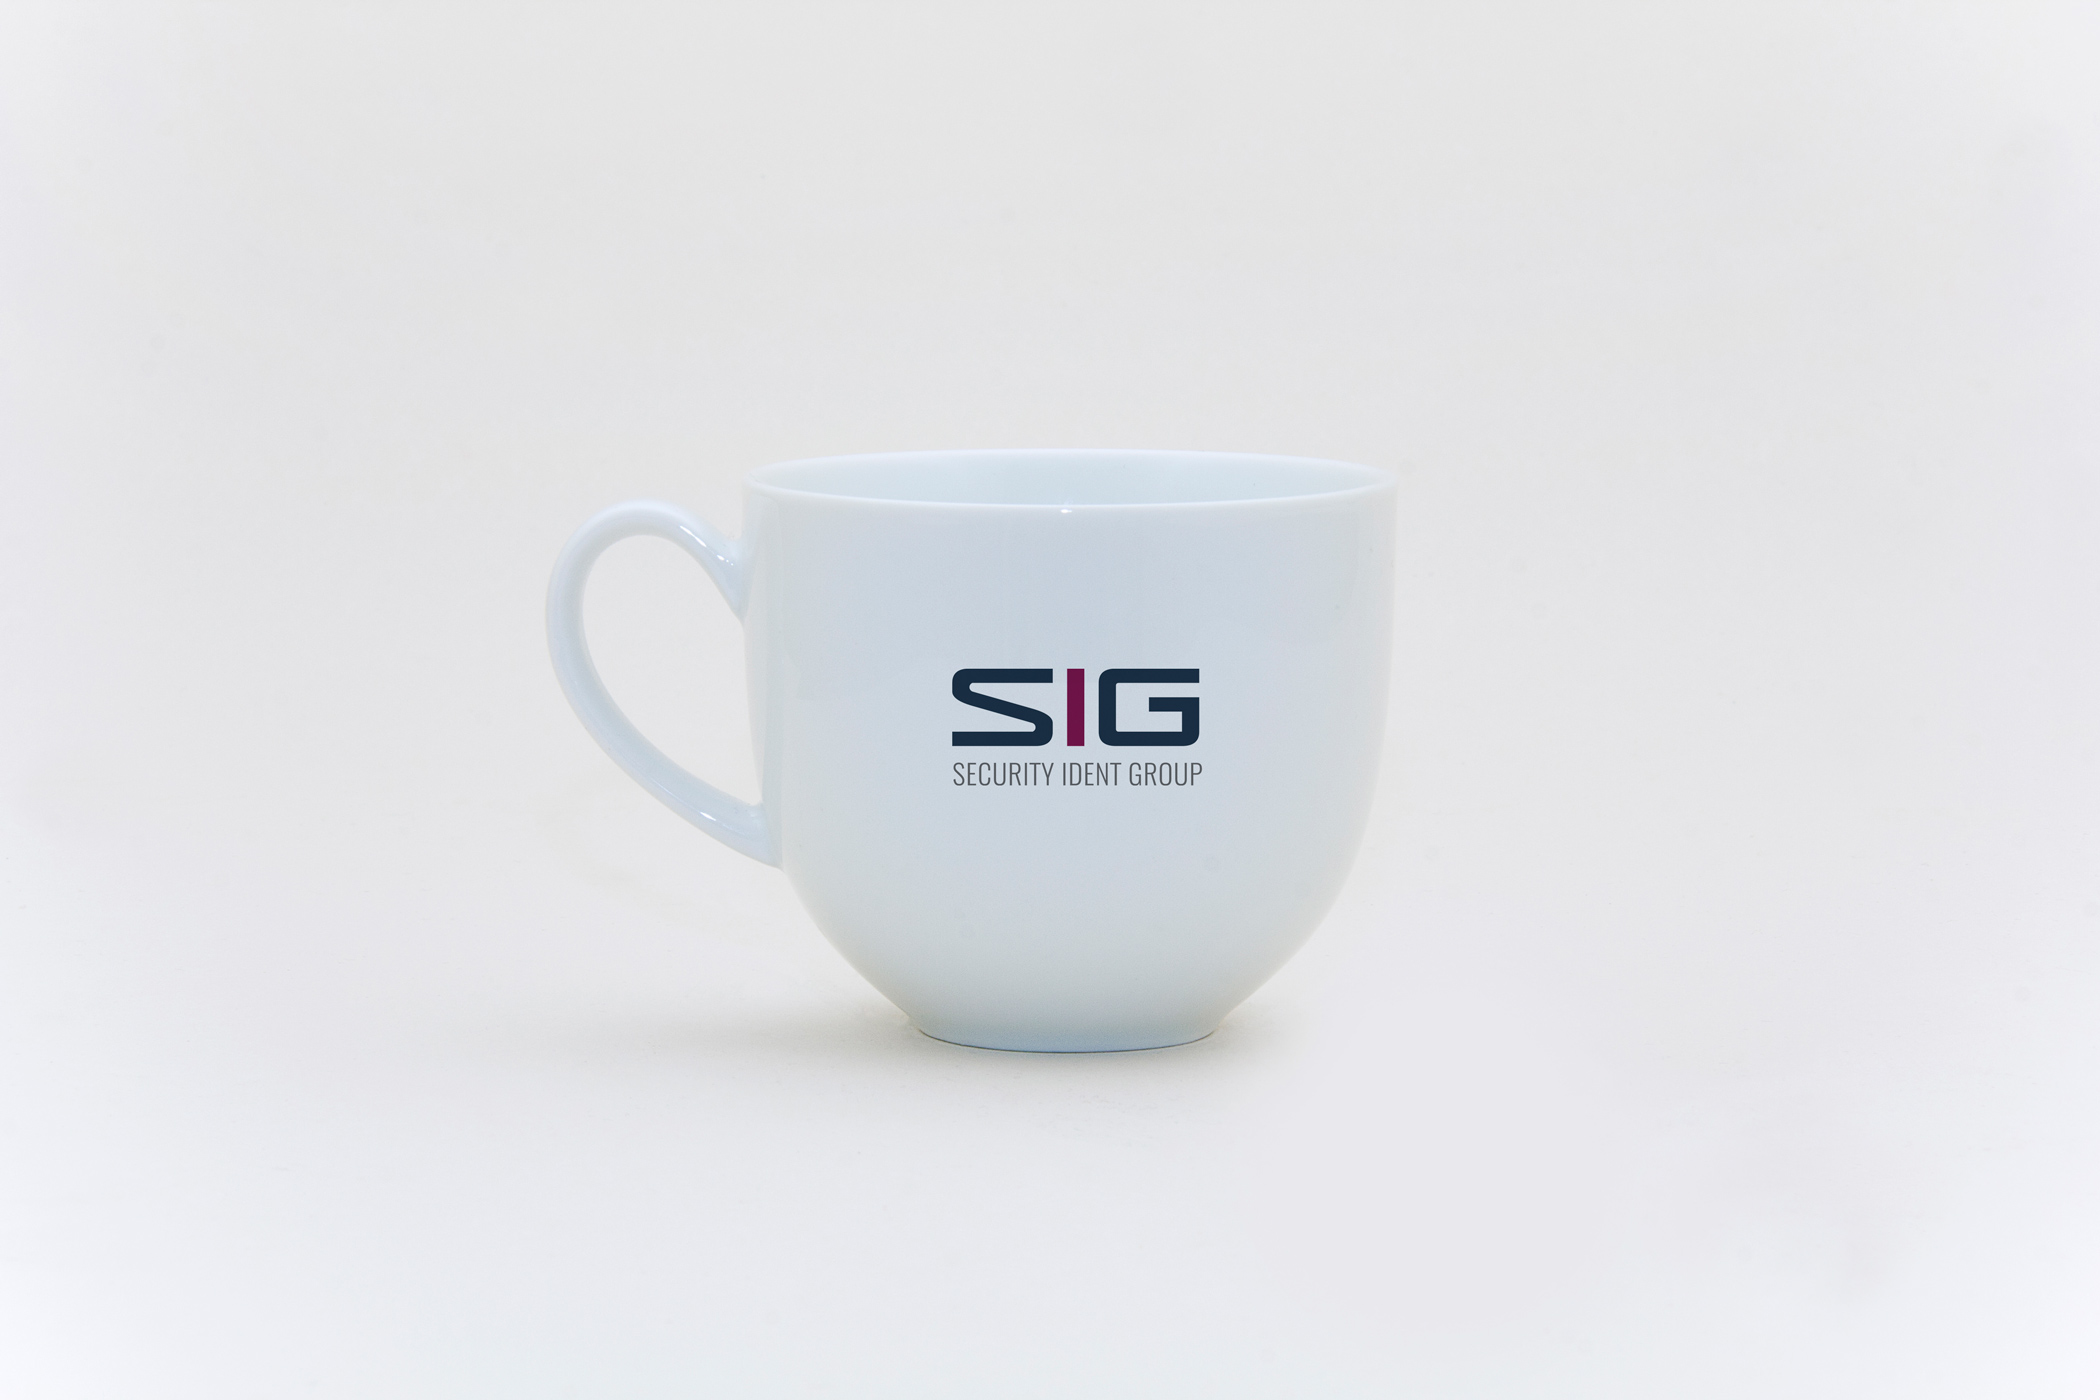 SIG corporate logo